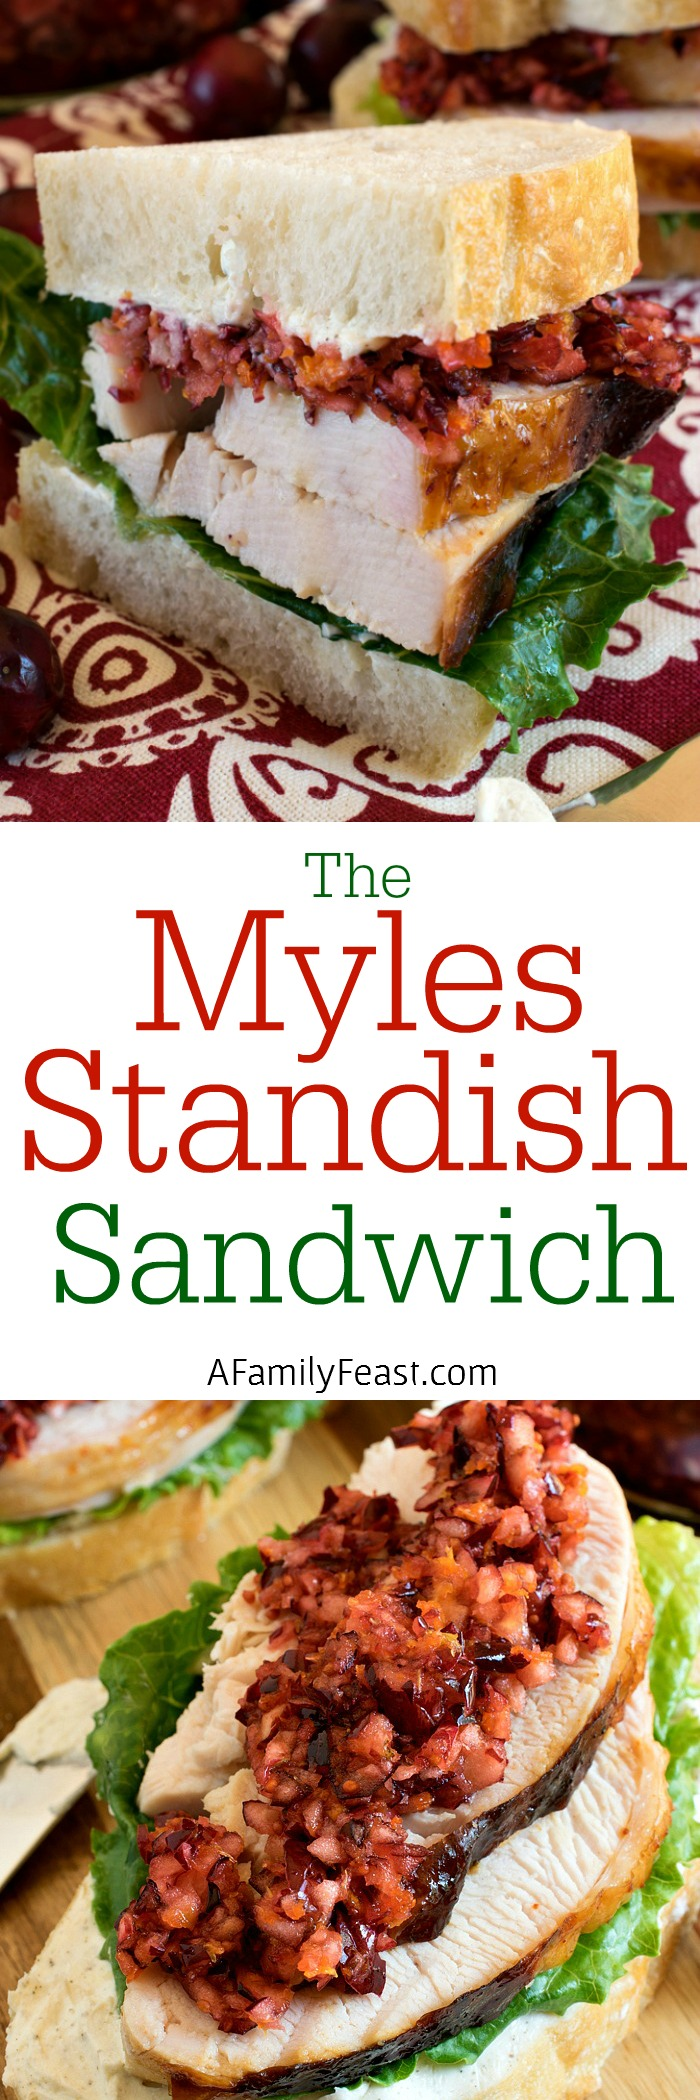 Myles Standish Sandwich - A delicious sandwich made with turkey slices, cream cheese on white crusty bread, and a delicious cranberry orange relish on top. So good!